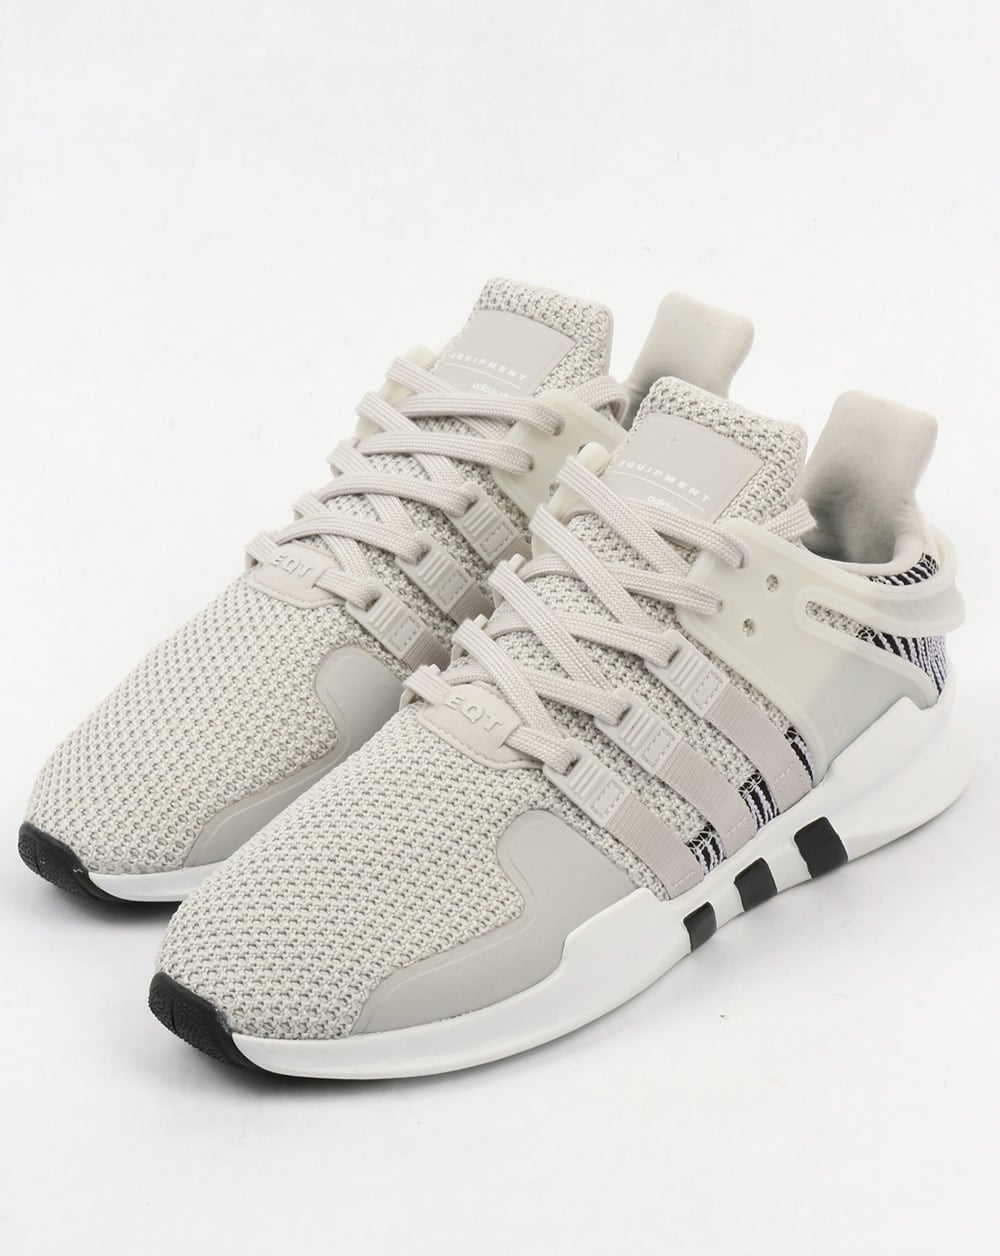 adidas eqt trainers grey